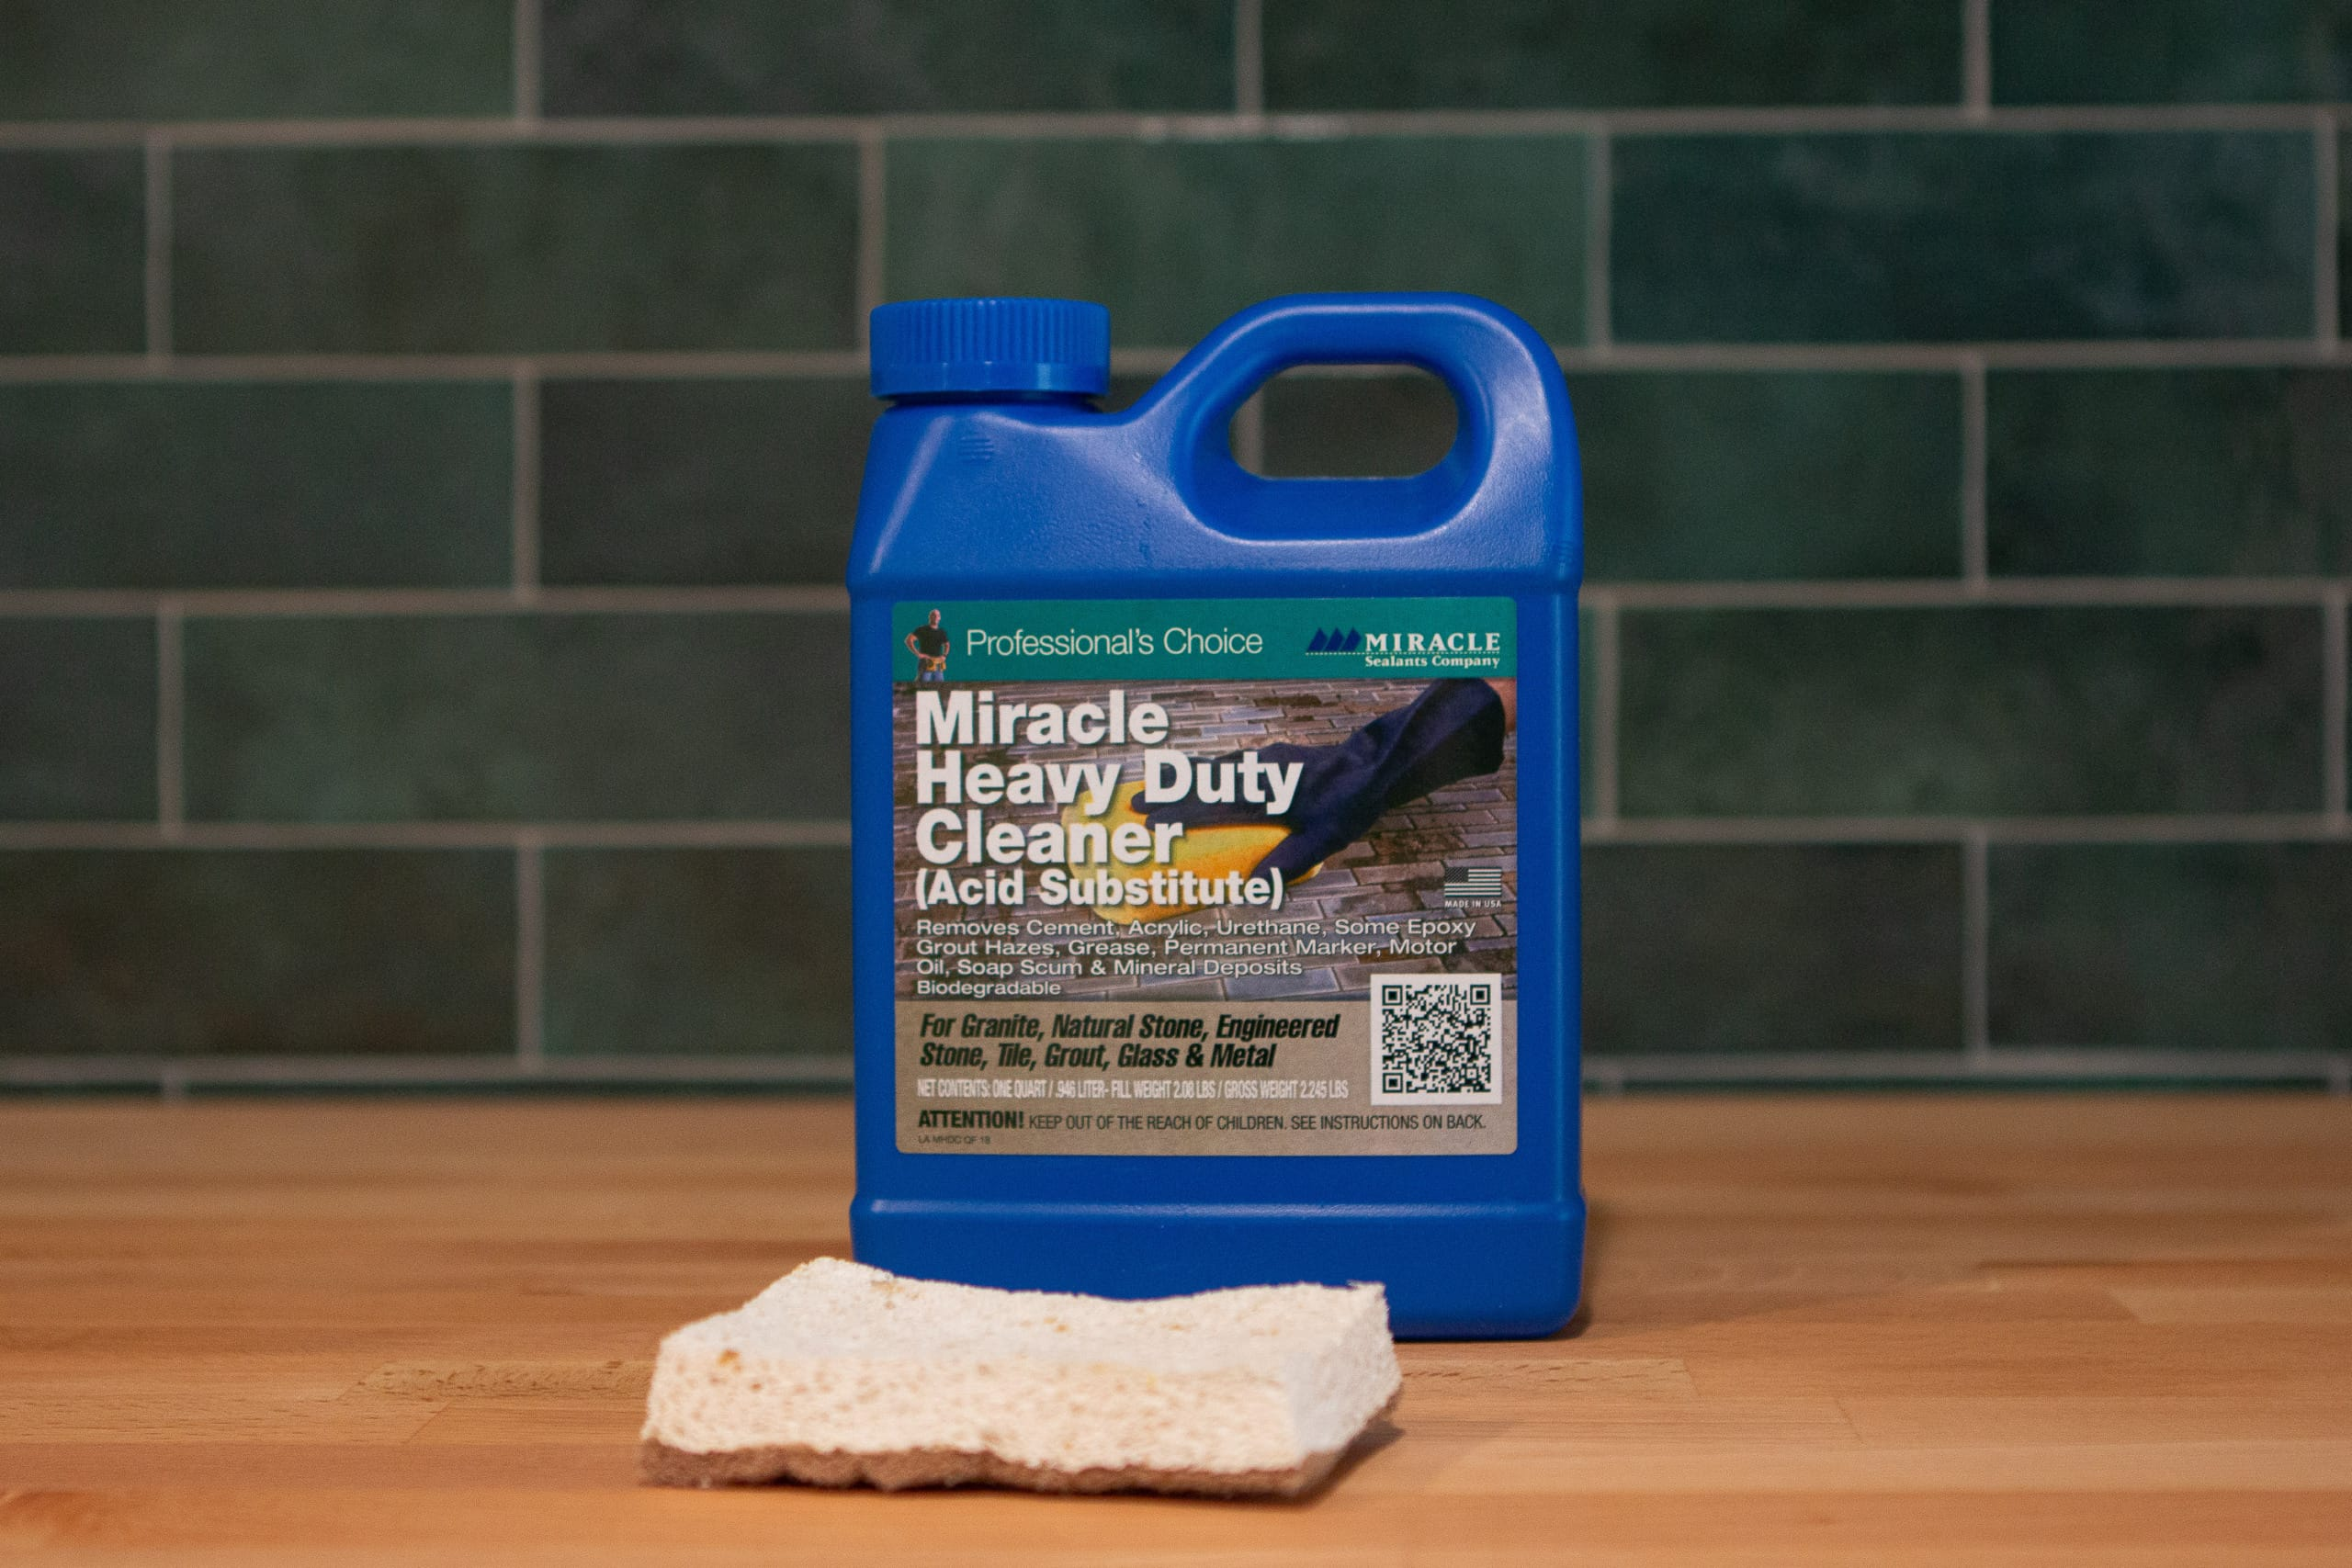 heavy duty cleaner to remove grout haze on tile